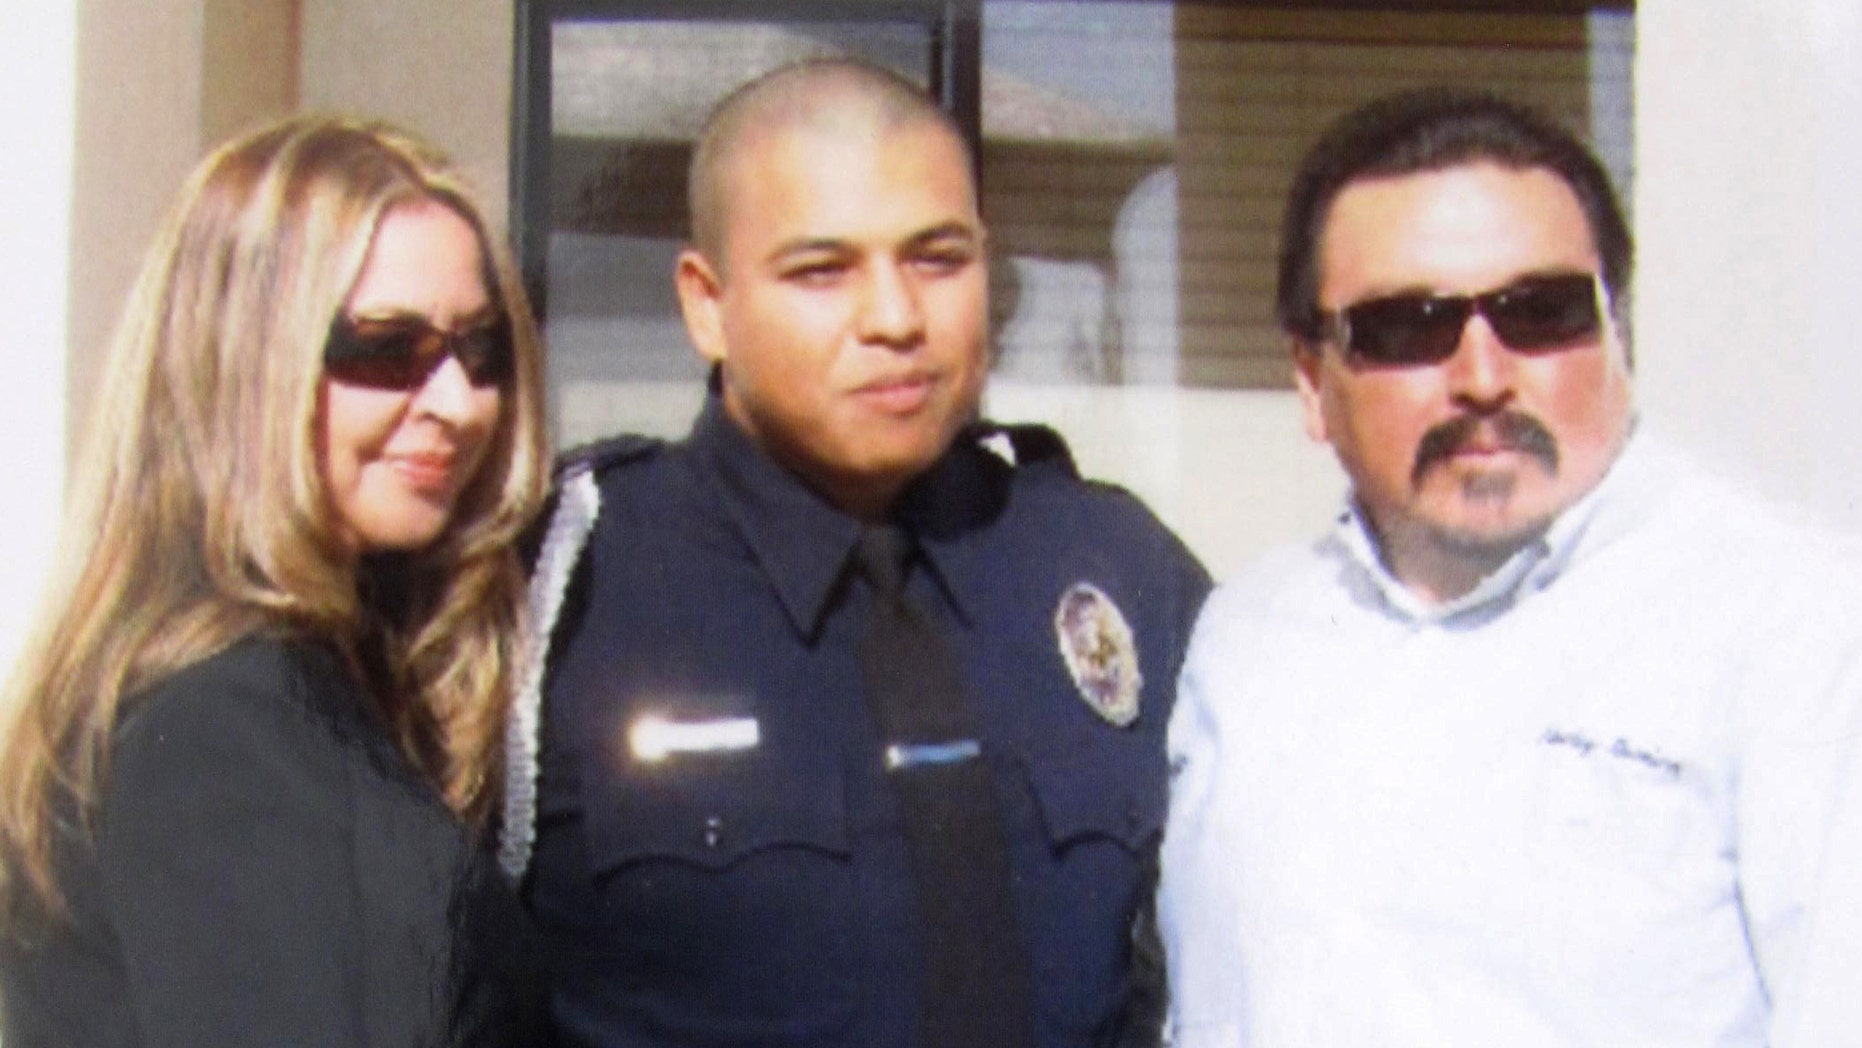 Officer Albert Covarrubias Jr. flanked by his father, Albert Sr., and his step-mother, Chela, on the day four years ago that he graduated from the police academy.